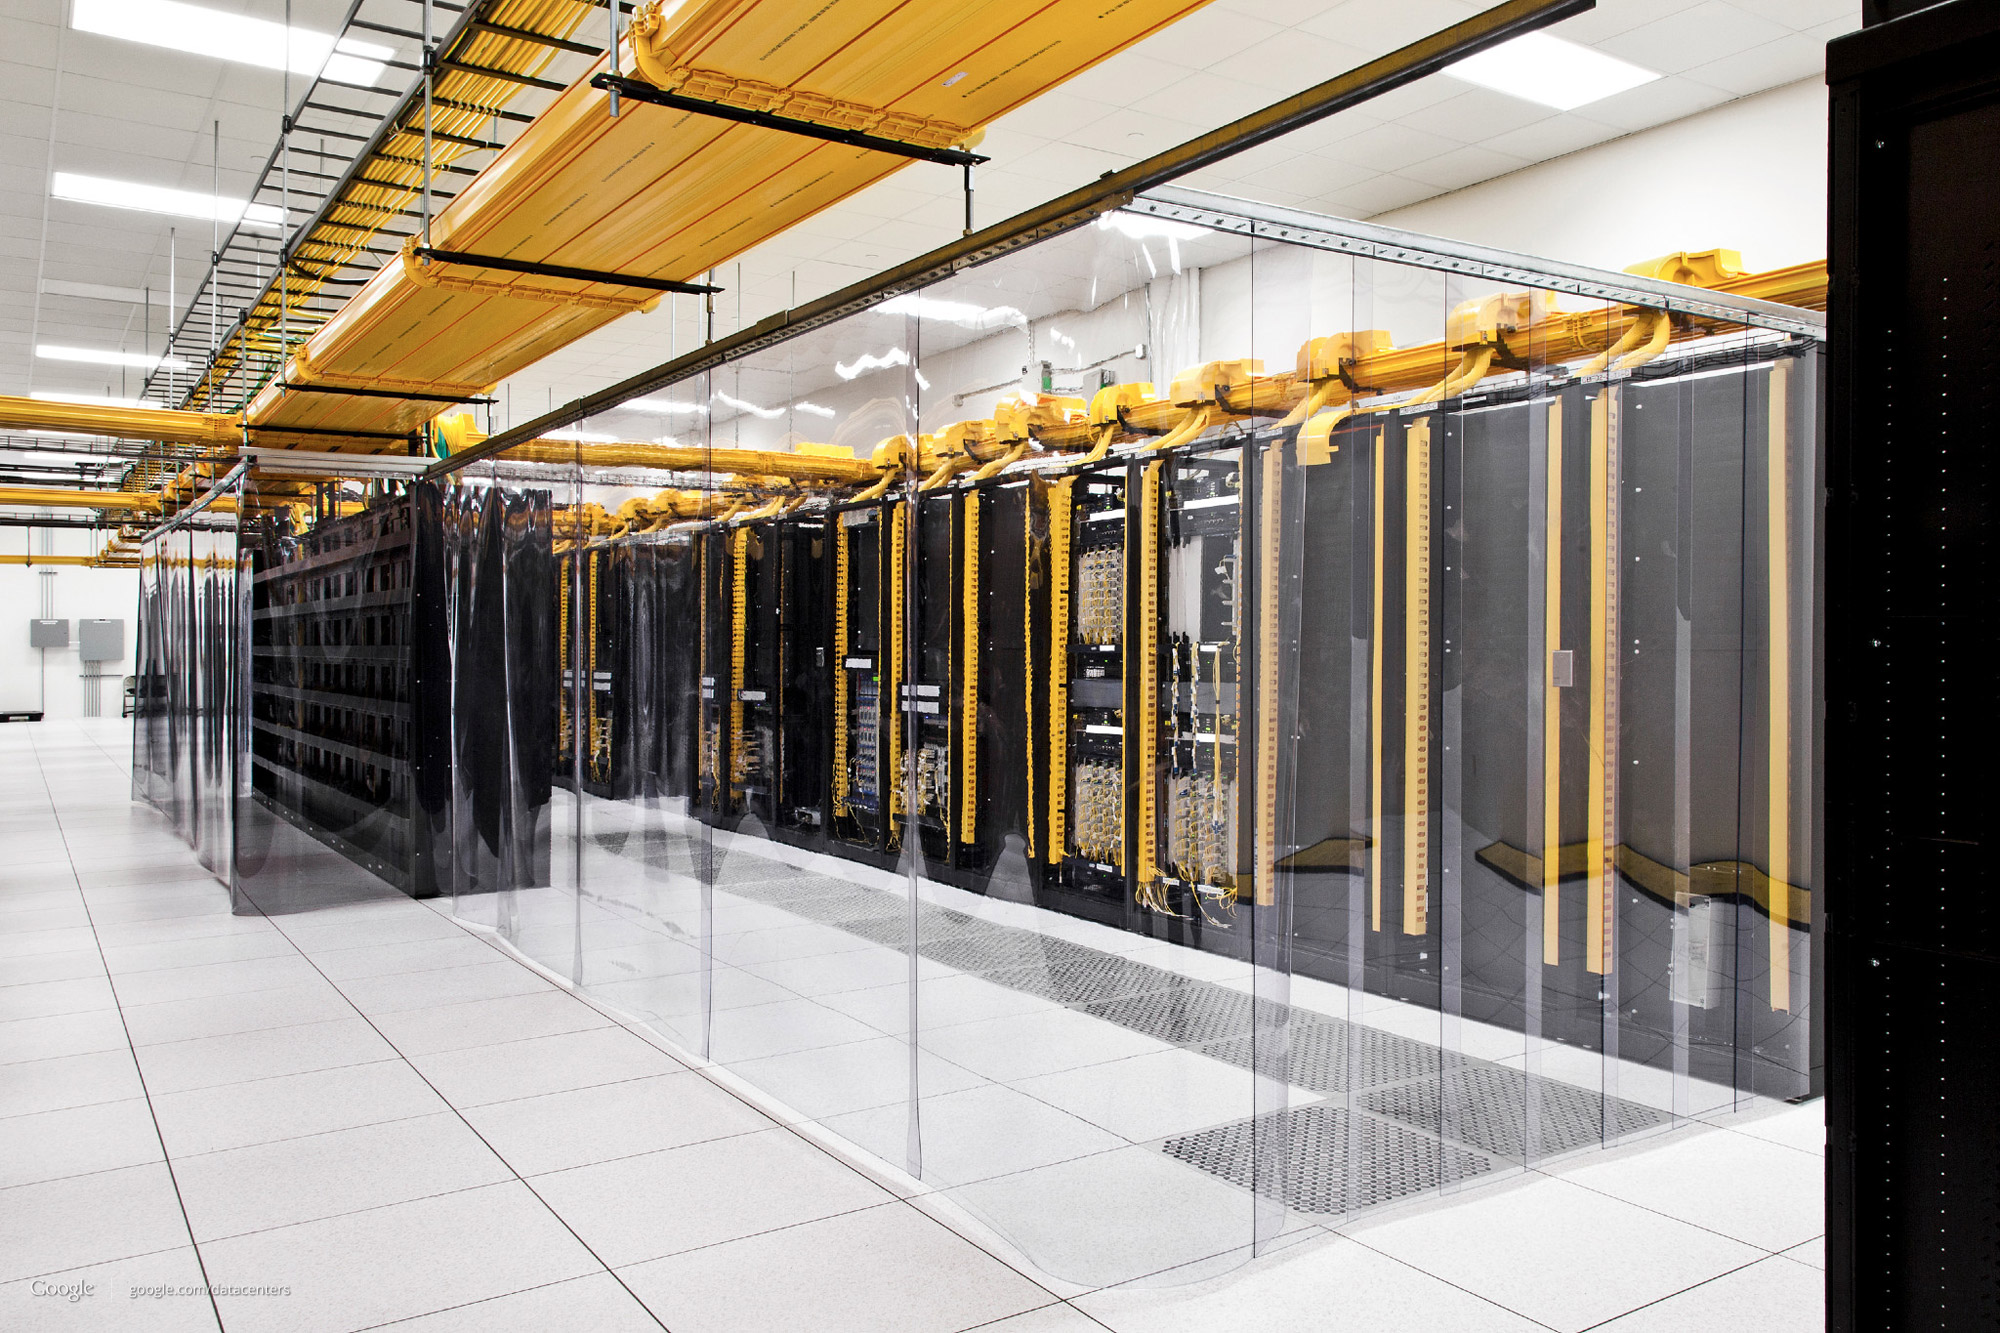 Google designs its computing infrastructure at the level of a data center, not individual computers.